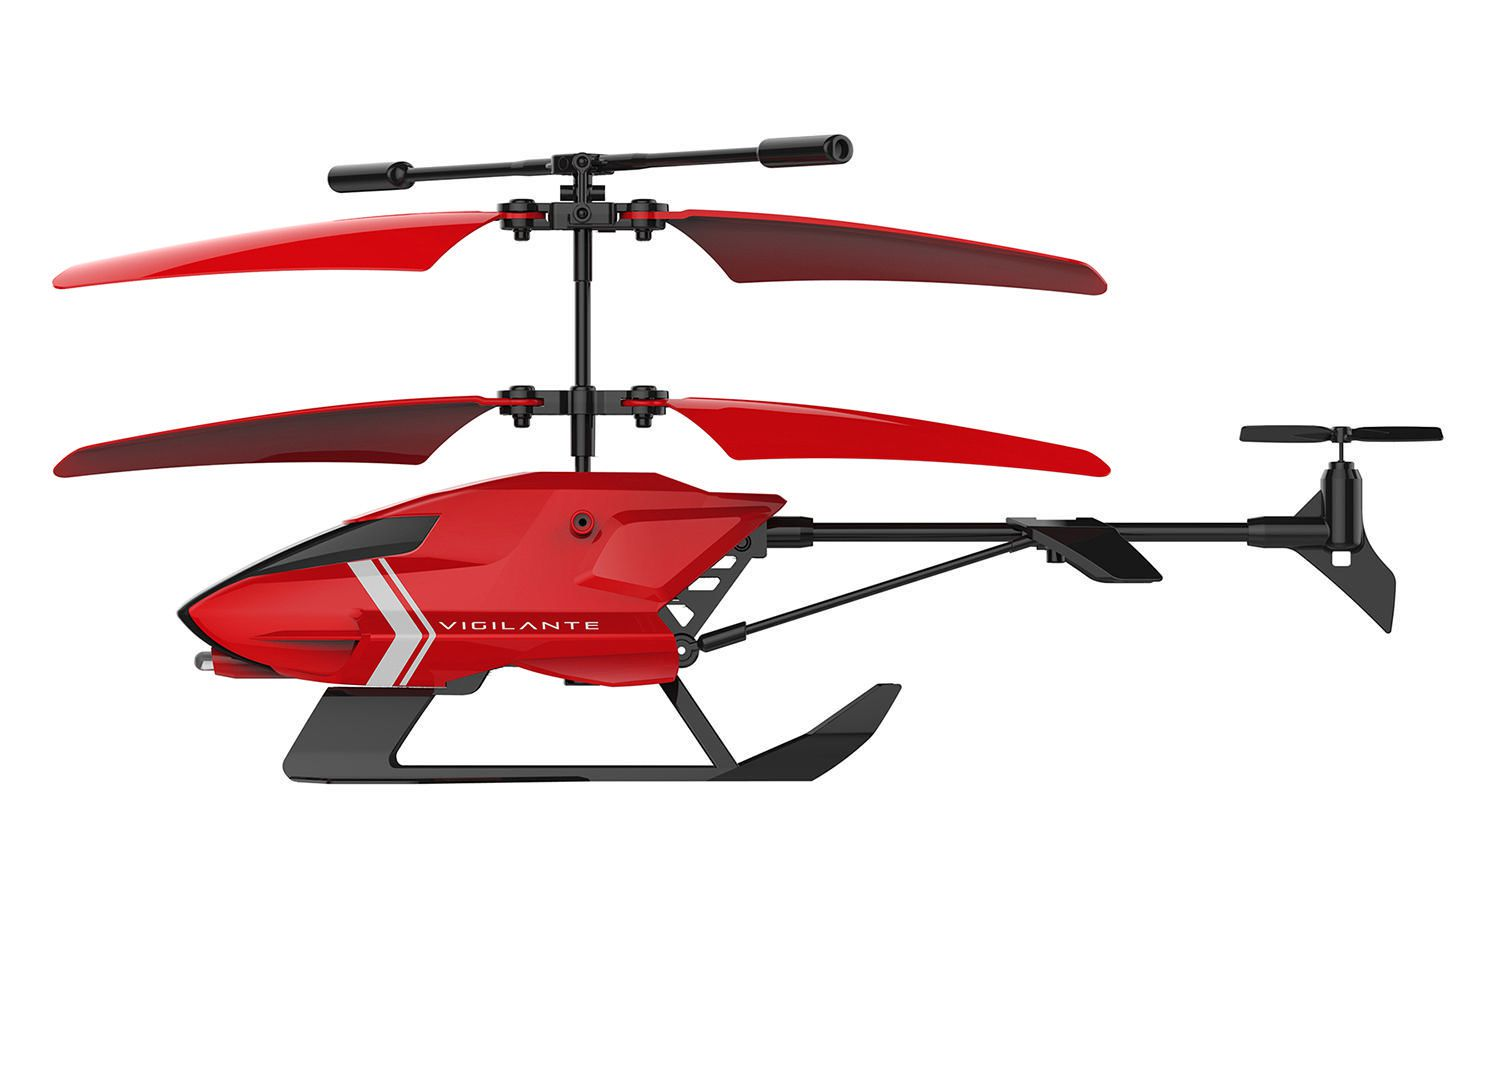 Drone Force Sky Rover Remote Controlled Vigilante Helicopter